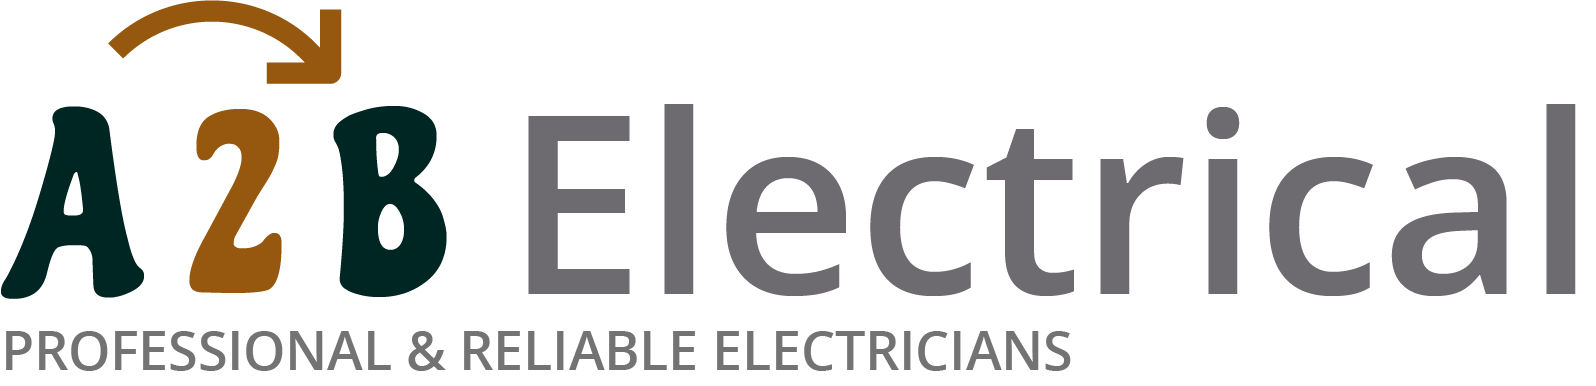 If you have electrical wiring problems in Ingatestone, we can provide an electrician to have a look for you.